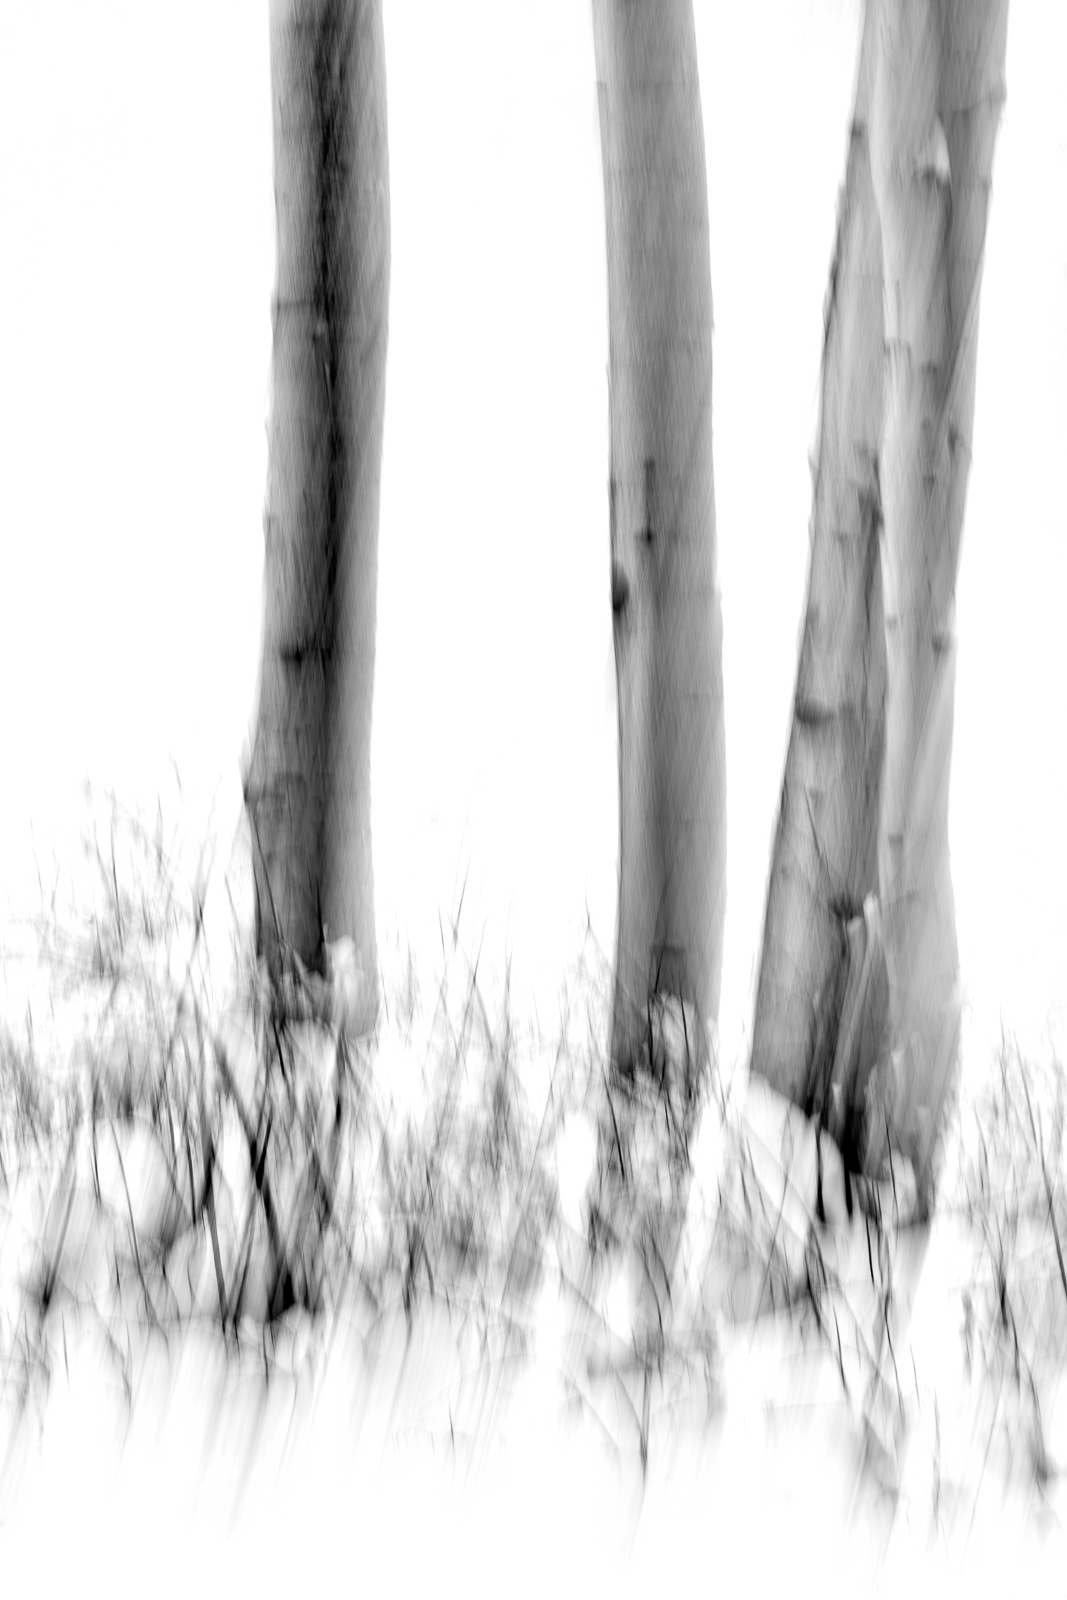 UINTA-WASATCH-CACHE NATIONAL FOREST, UTAH, limited edition, fine art, prints, winter, snow, aspen trees, blur, snowflakes, photograph, abstract, black and white, photo